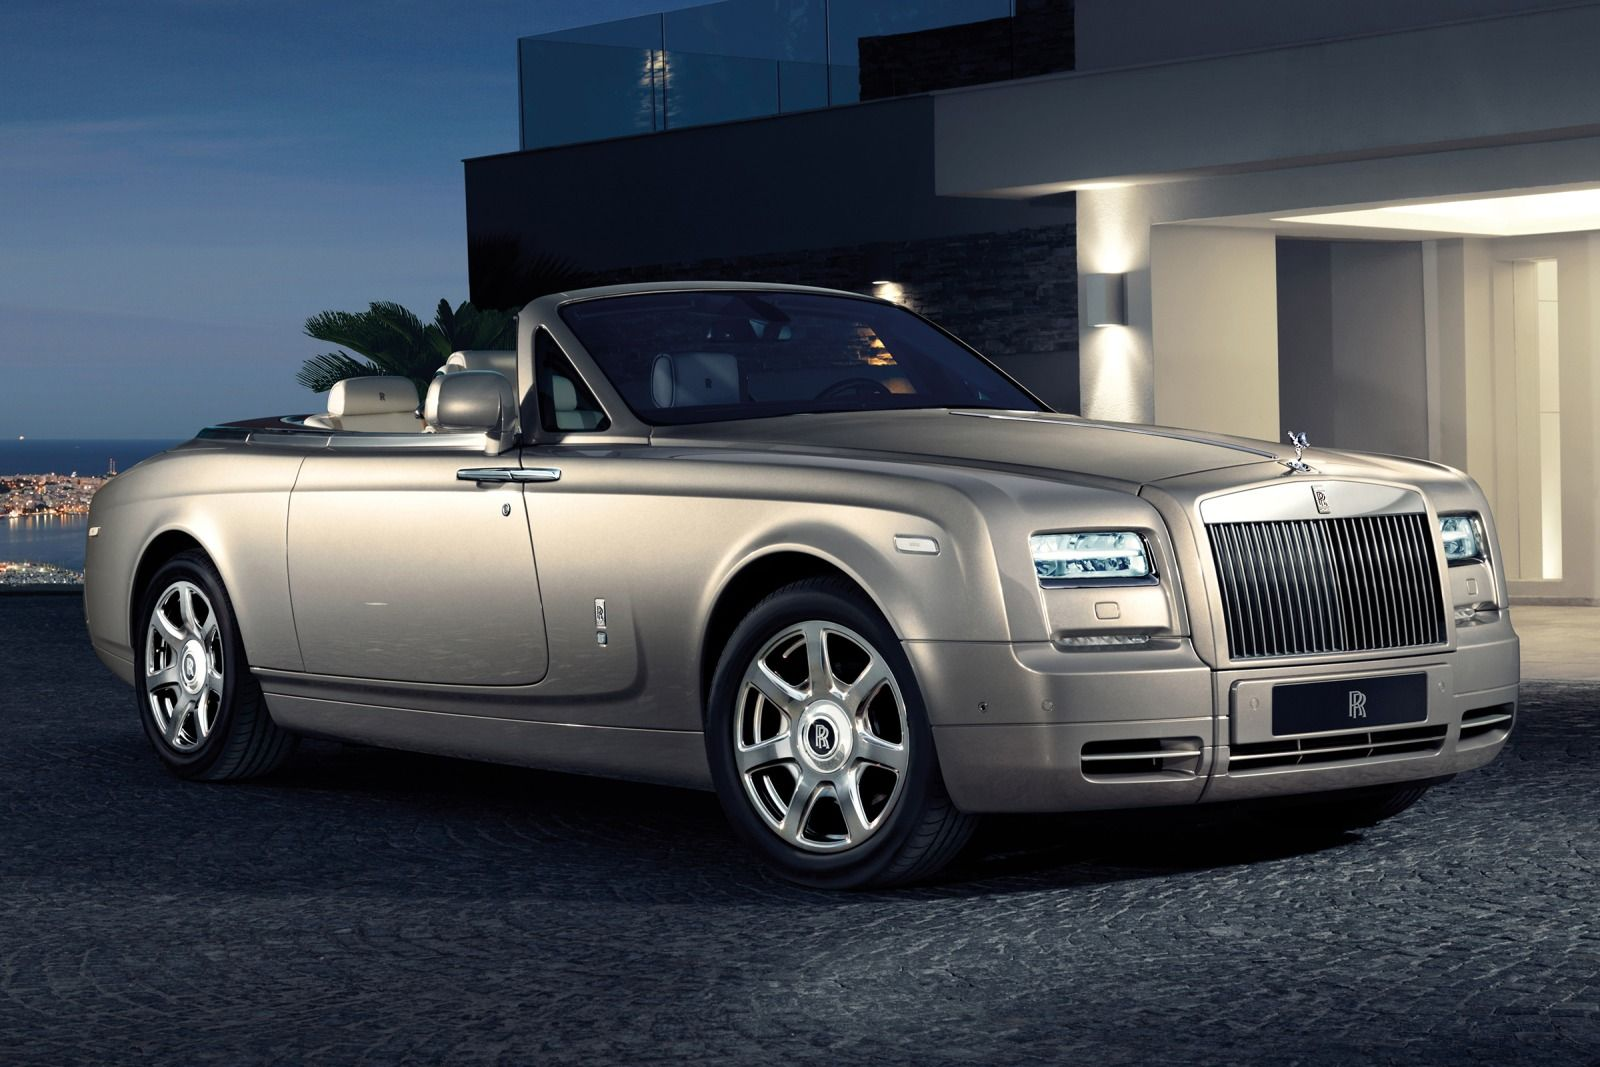 2015_Rolls-Royce_Phantom_Drophead_Coupe_2dr_Convertible_67L_12cyl_8A_5692799